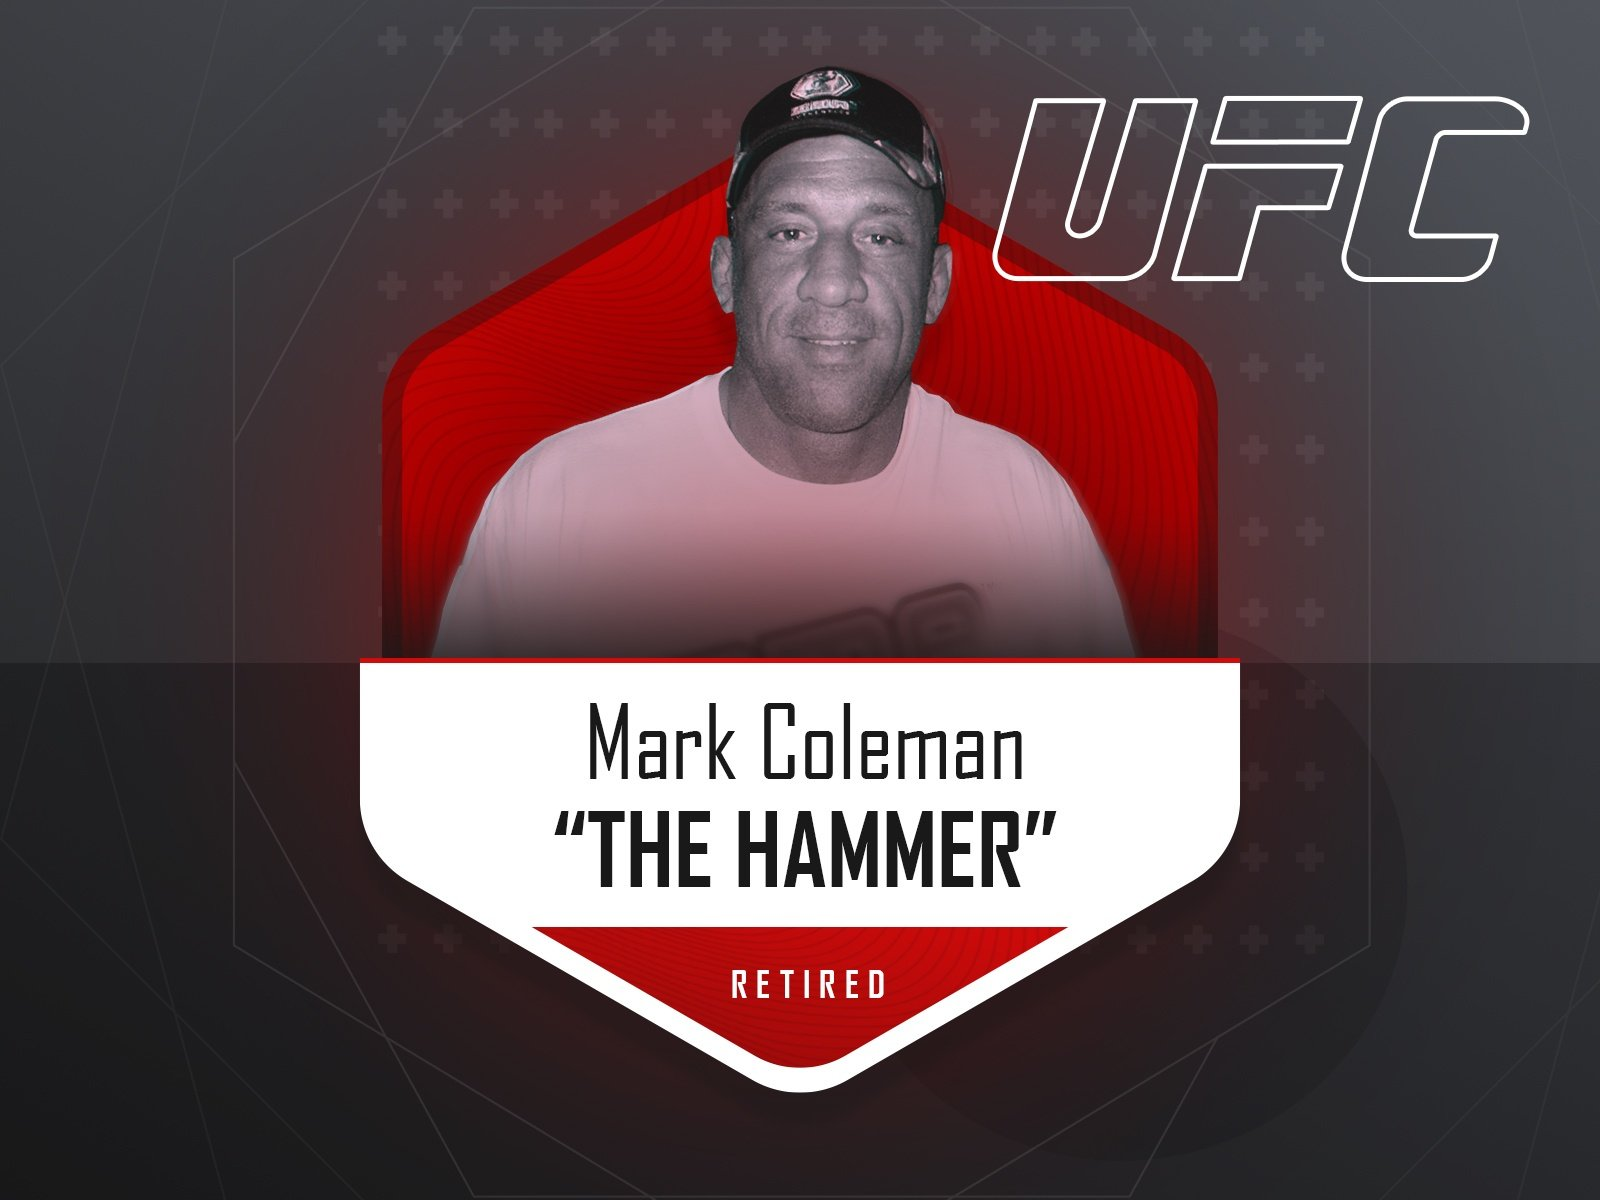 Mark Coleman - UFC fighter